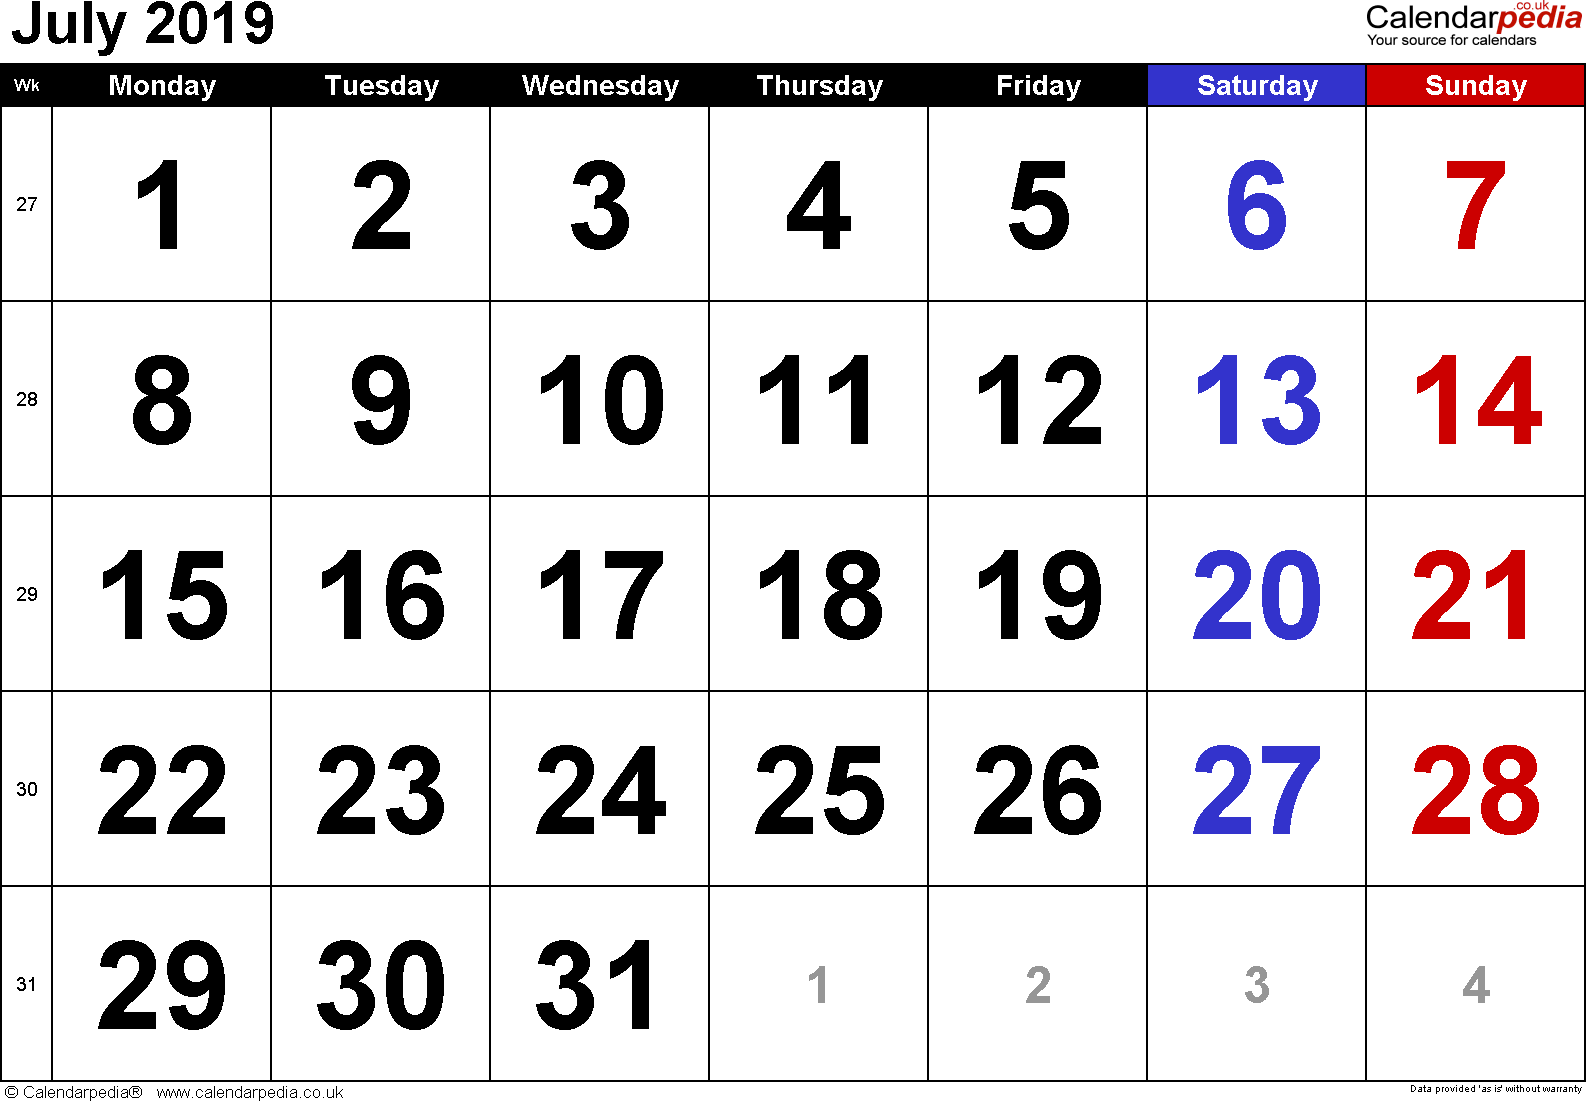 Calendar July 2019, landscape orientation, large numerals, 1 page, with UK bank holidays and week numbers